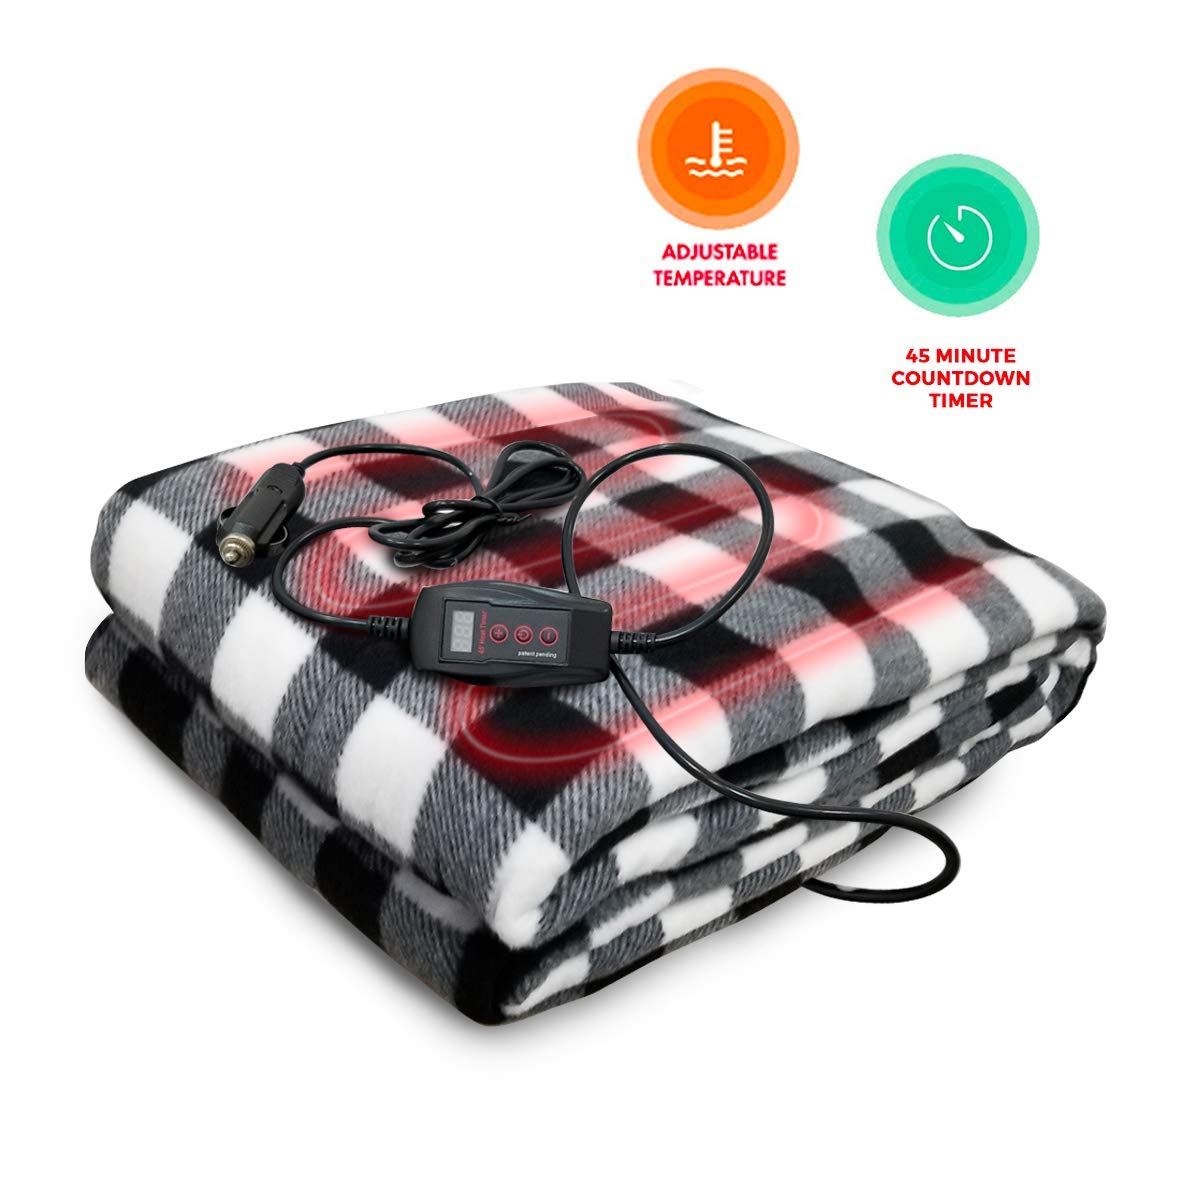 Zento Deals Premium Quality Vehicle Electric Heated Blanket Black and White - 12 Volt Heated Travel Blanket by Zento Deals